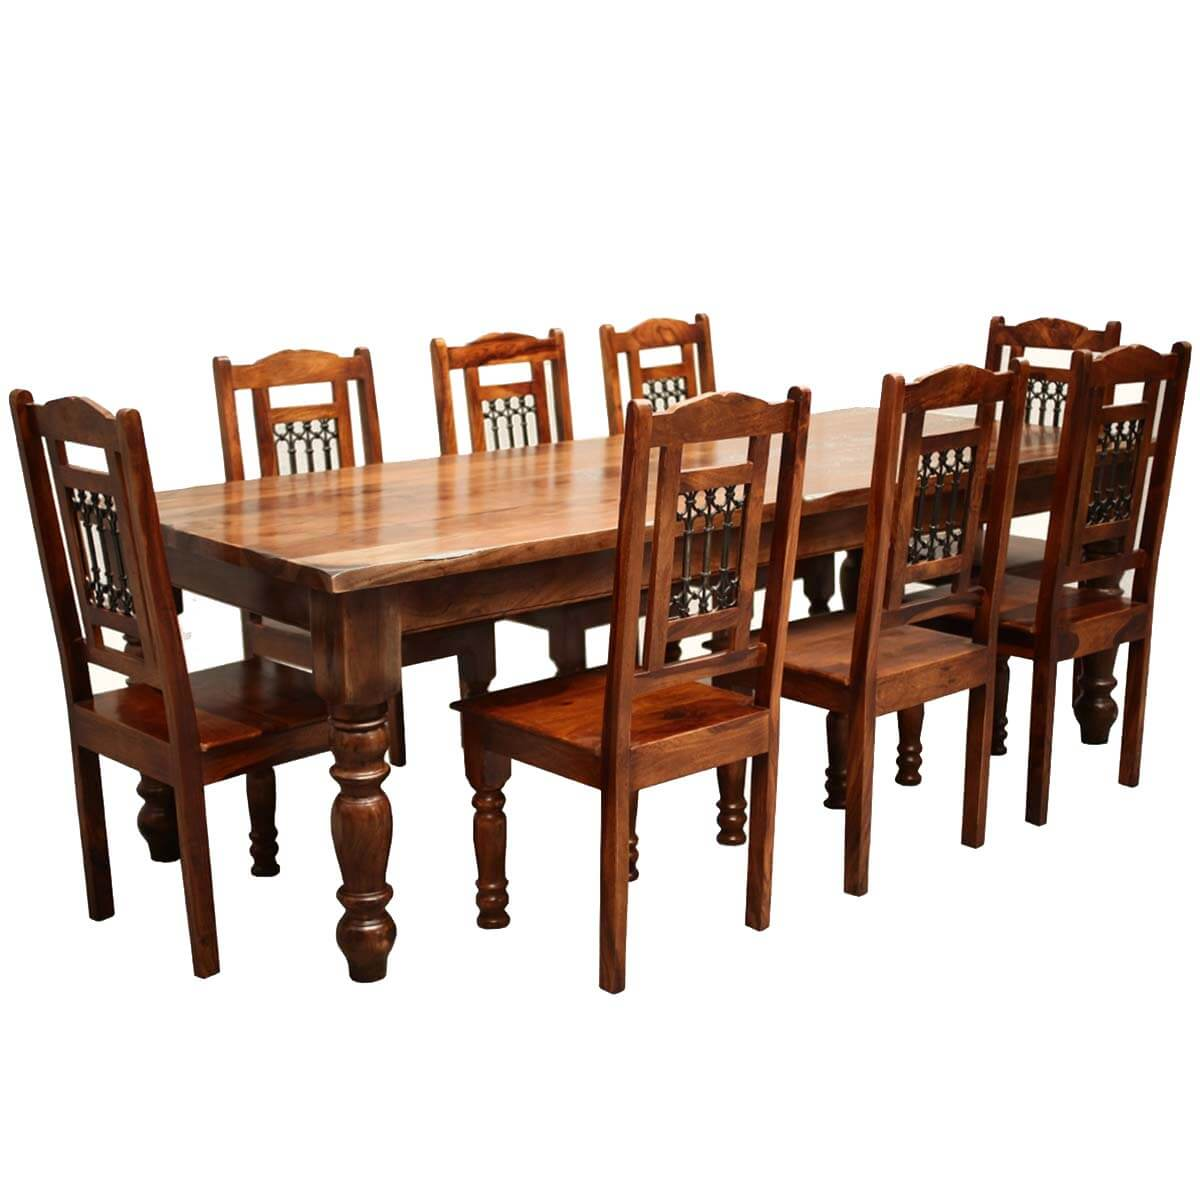 Rustic furniture solid wood large dining table 8 chair set for Dining table set designs